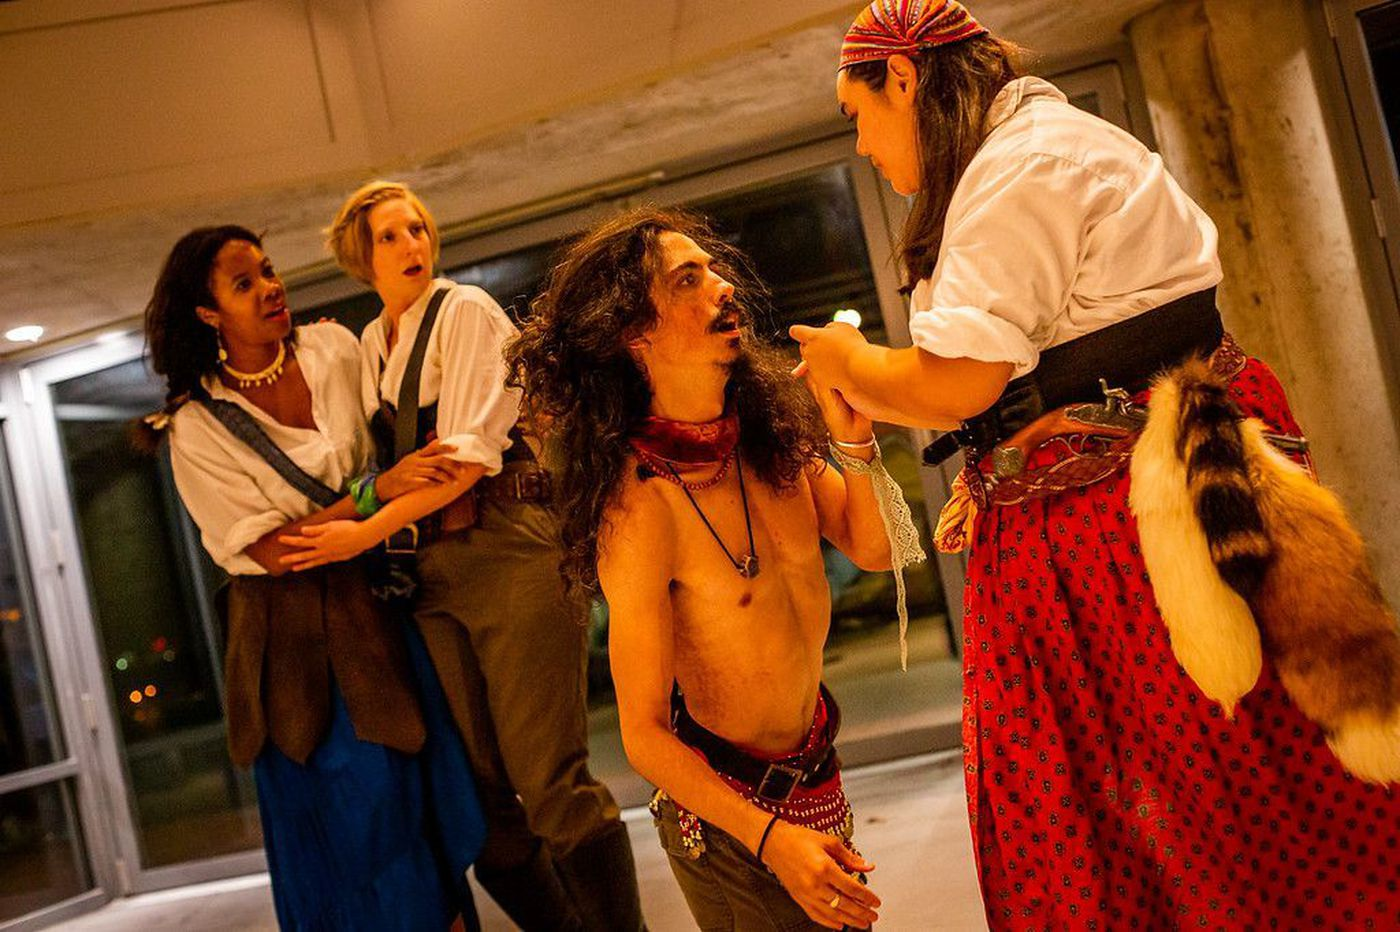 PAC's 'Sea Voyage' at Independence Seaport Museum: Pirates, mayhem, humor, sex — and a very game cast